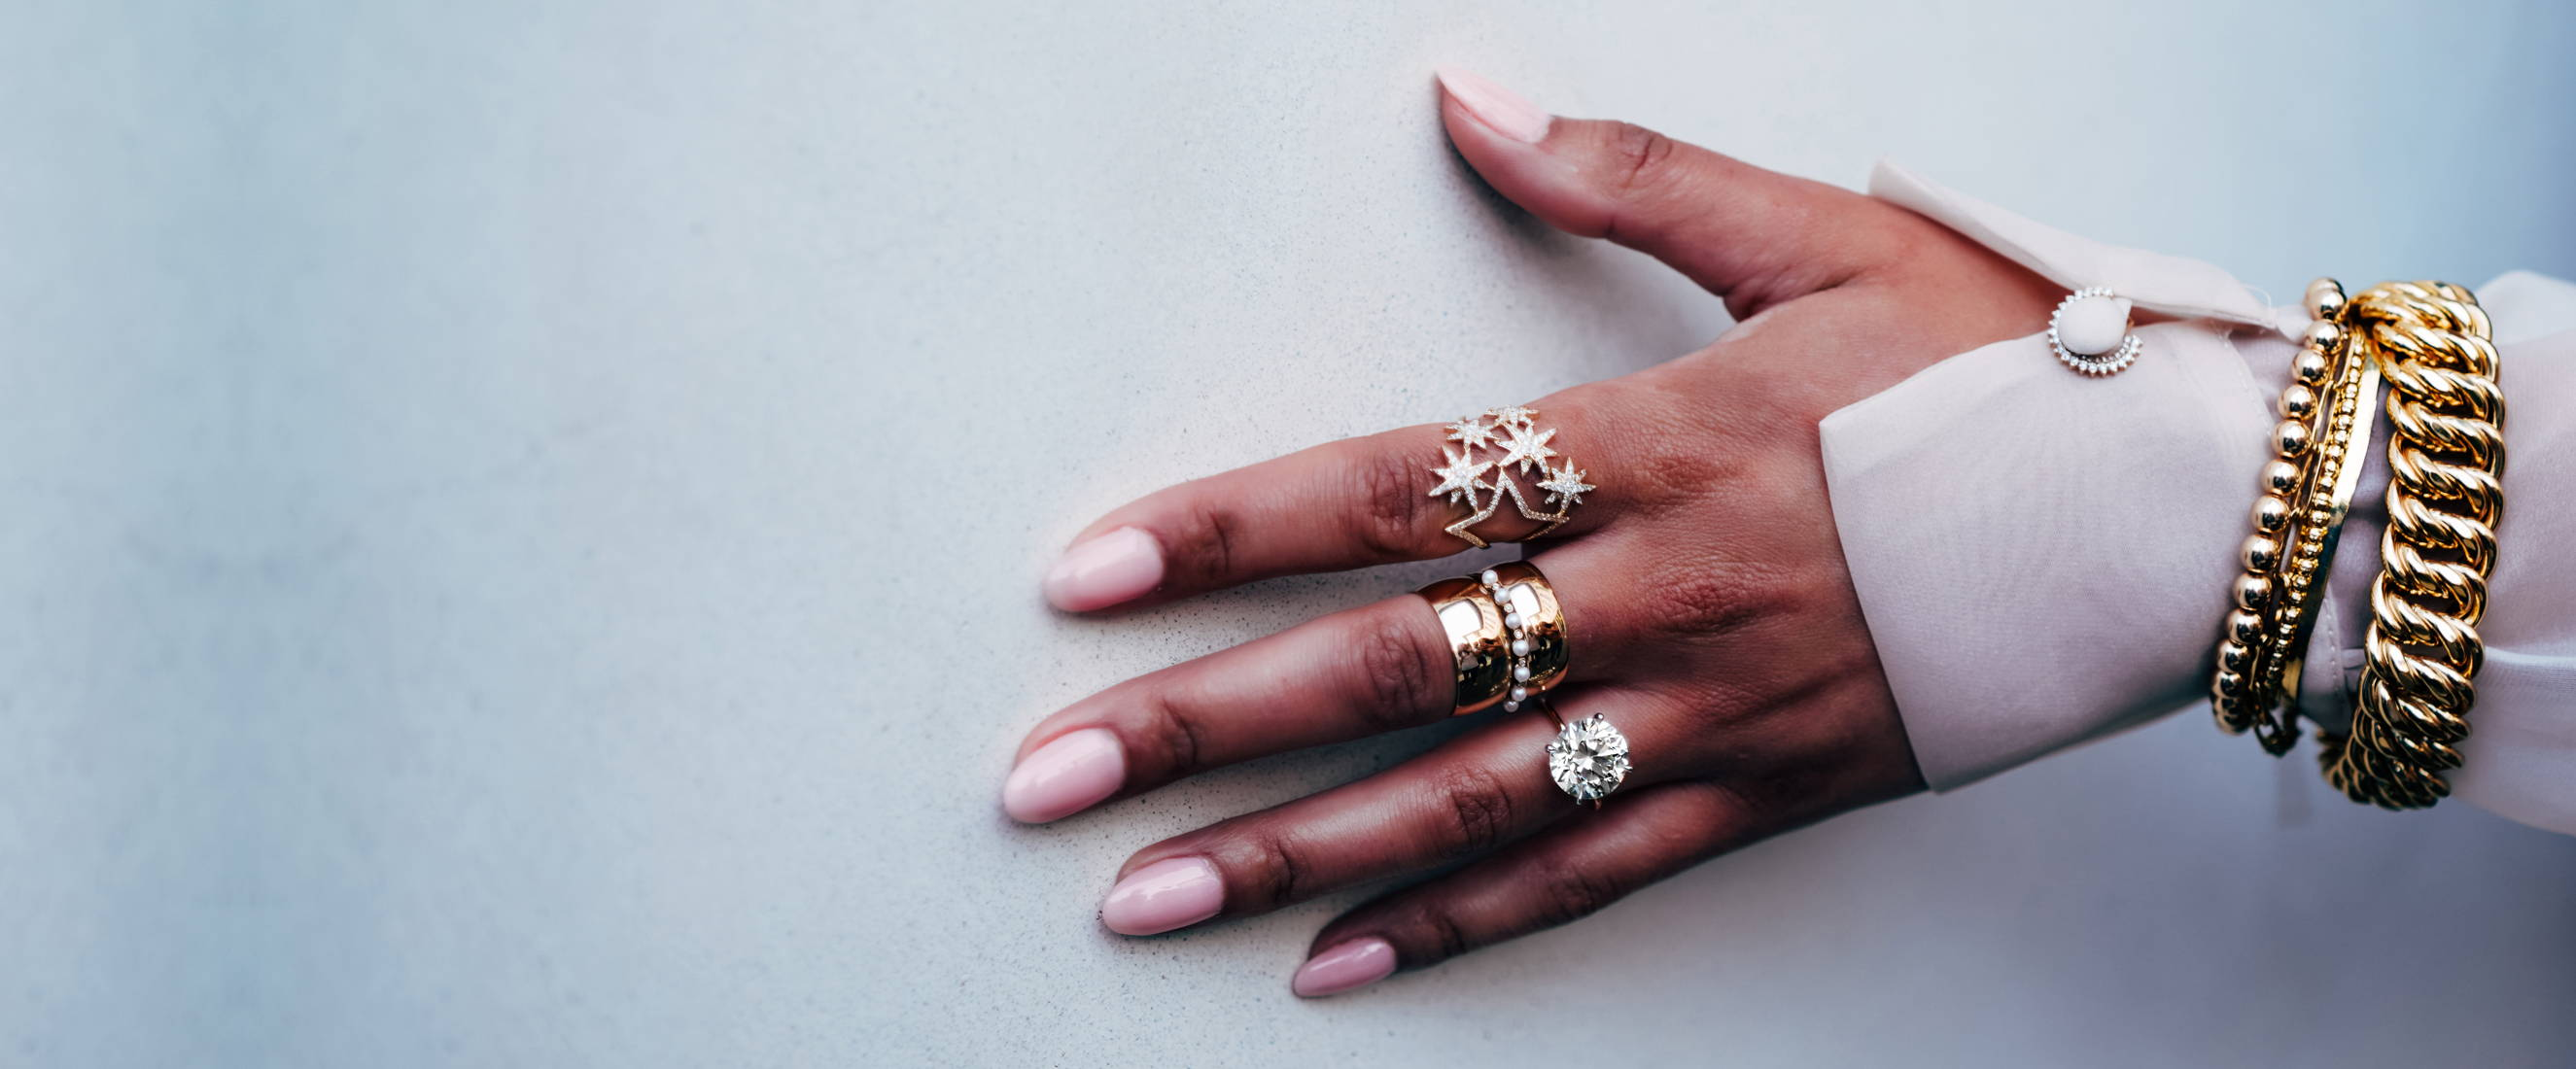 Hand wearing Ring Concierge jewelry